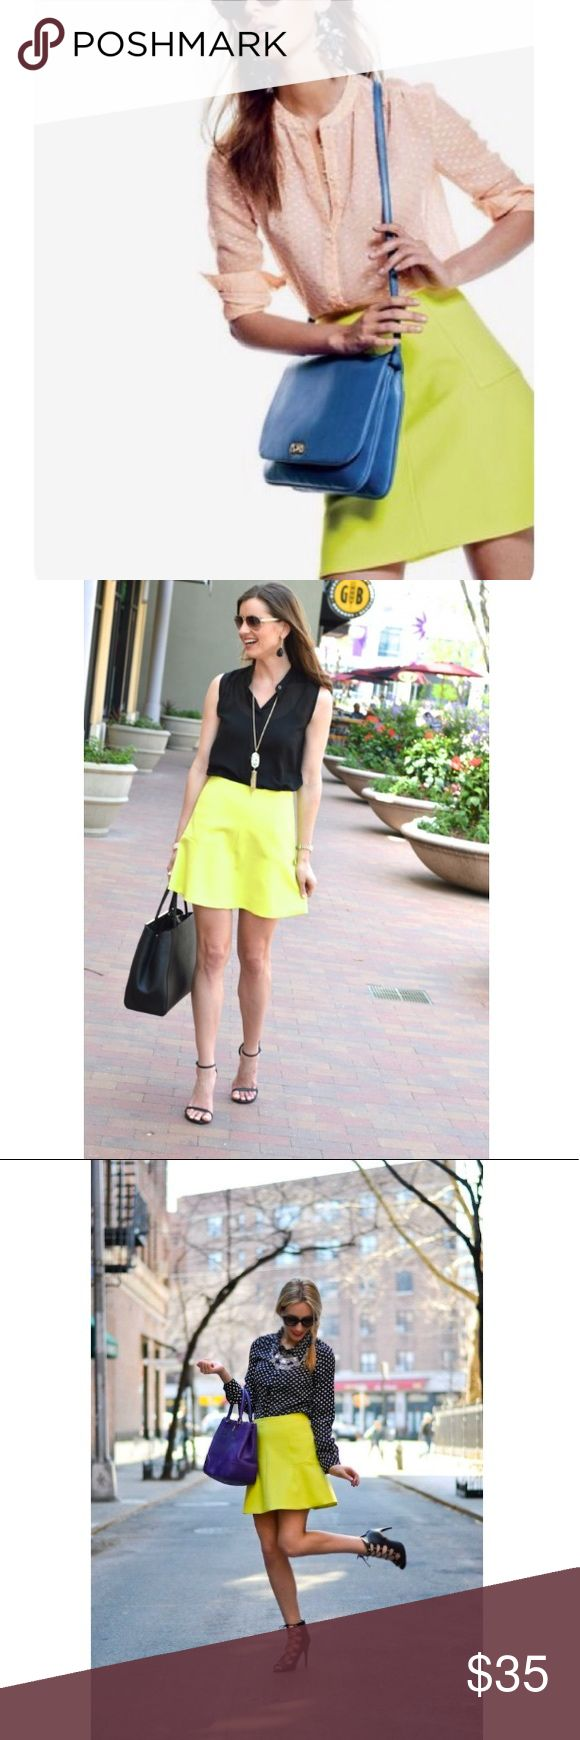 J. Crew Neon Yellow Fluted Flared Skirt Skirt is super cute and in excellent condition. Is definitely a statement piece for any wardrobe. Fully lined and back zip. J. Crew Skirts